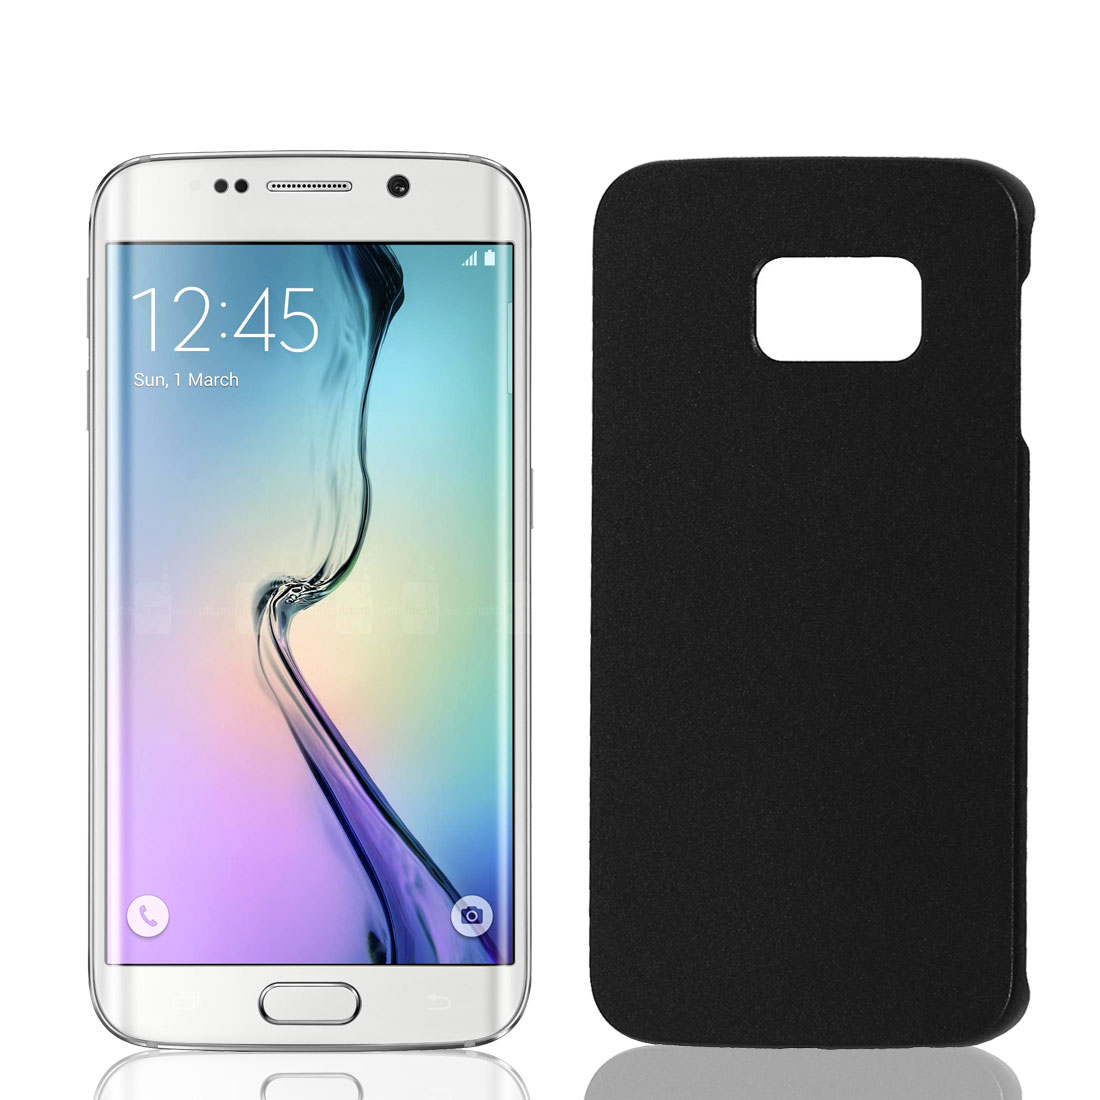 Black Hard Plastic Back Case Cover Phone Protective Shell Skin for Galaxy S6 Edge